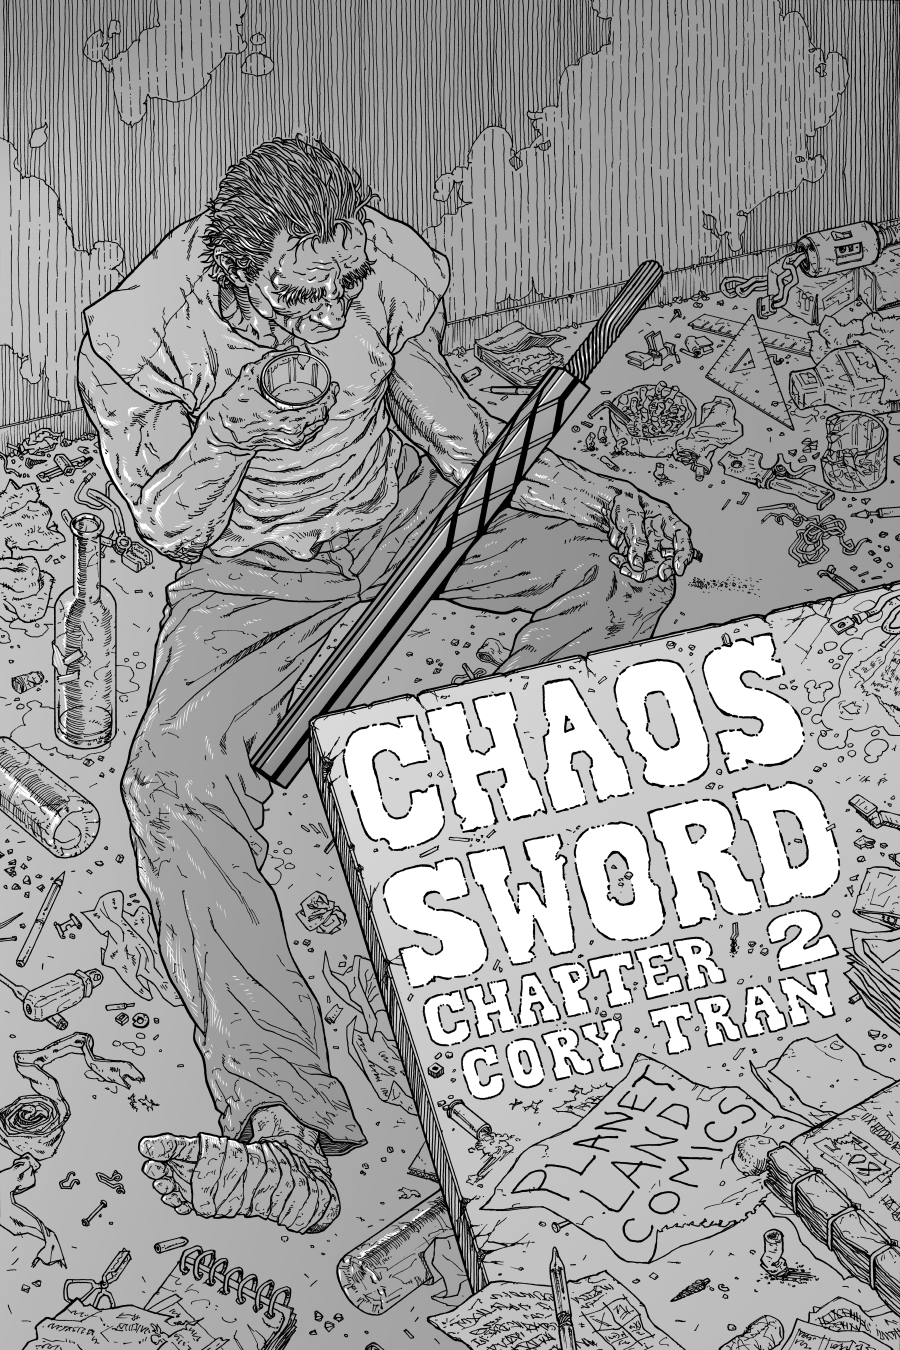 Chaos Sword Chapter 2 Cover